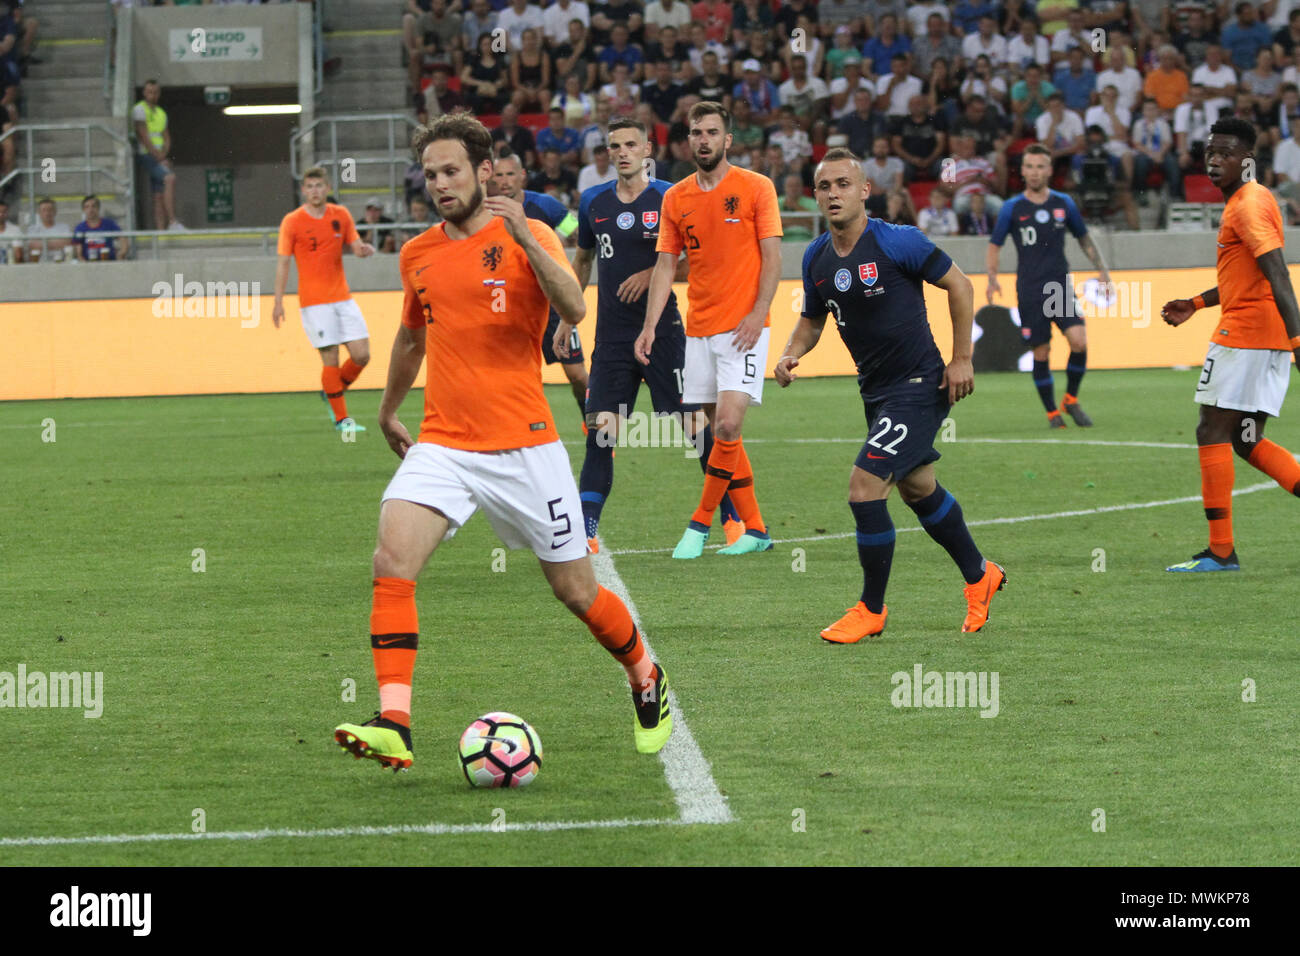 Trnava, Slovakia. 31st May, 2018. Daley Blind (5) in action during the friendly football match between Slovakia and Netherlands (1 – 1). - Stock Image